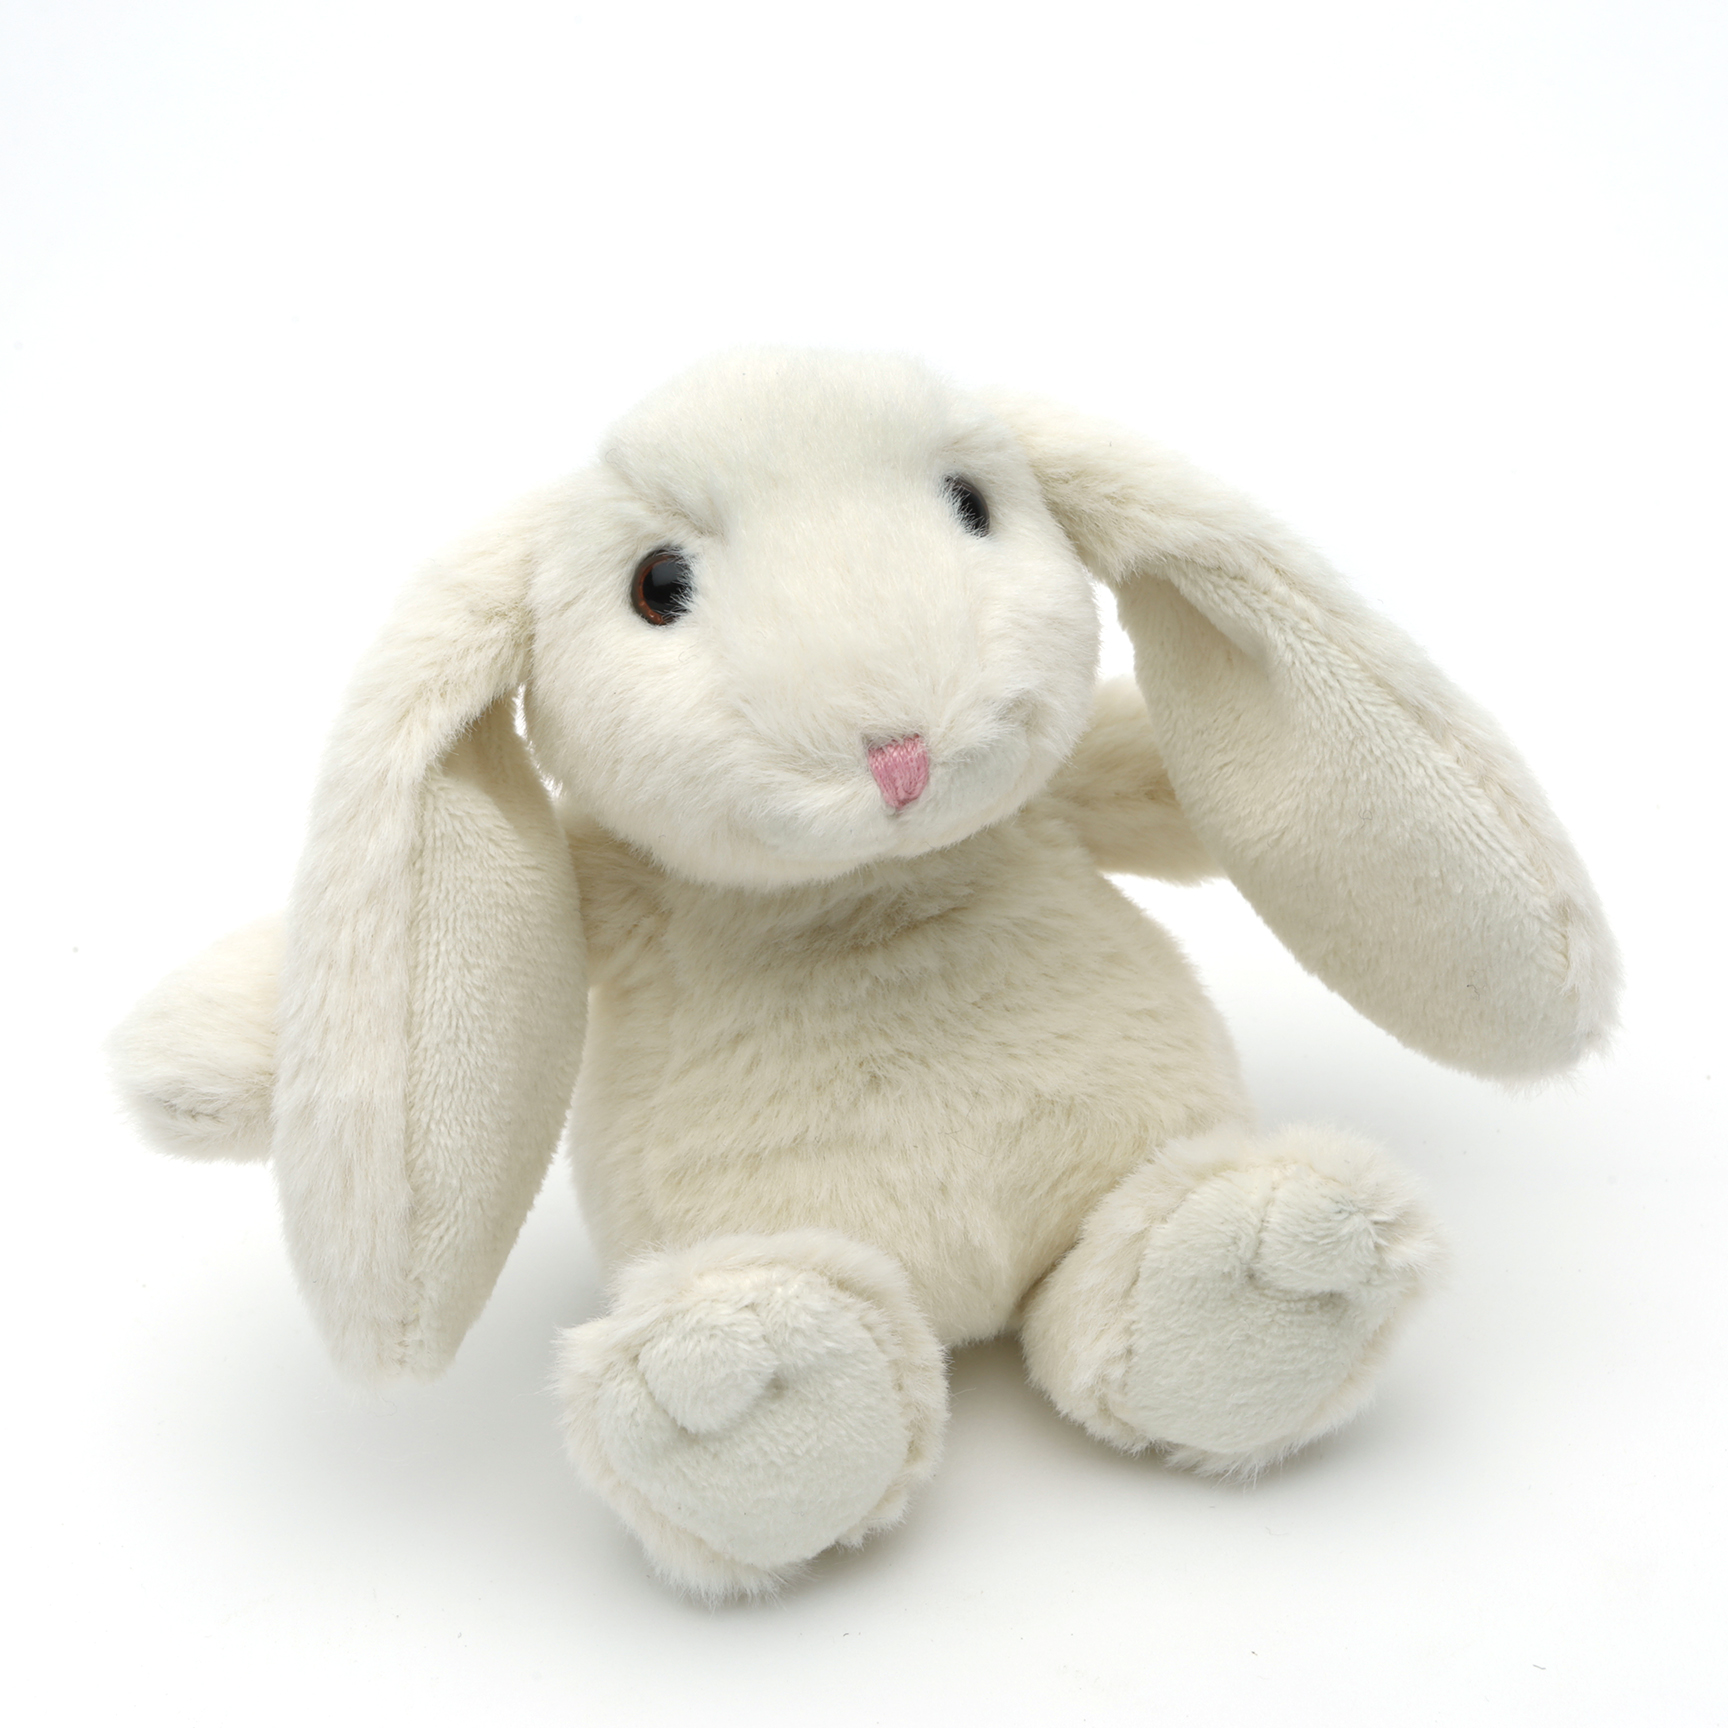 MINI CREAM SNUGGLY BUNNY JOMANDA